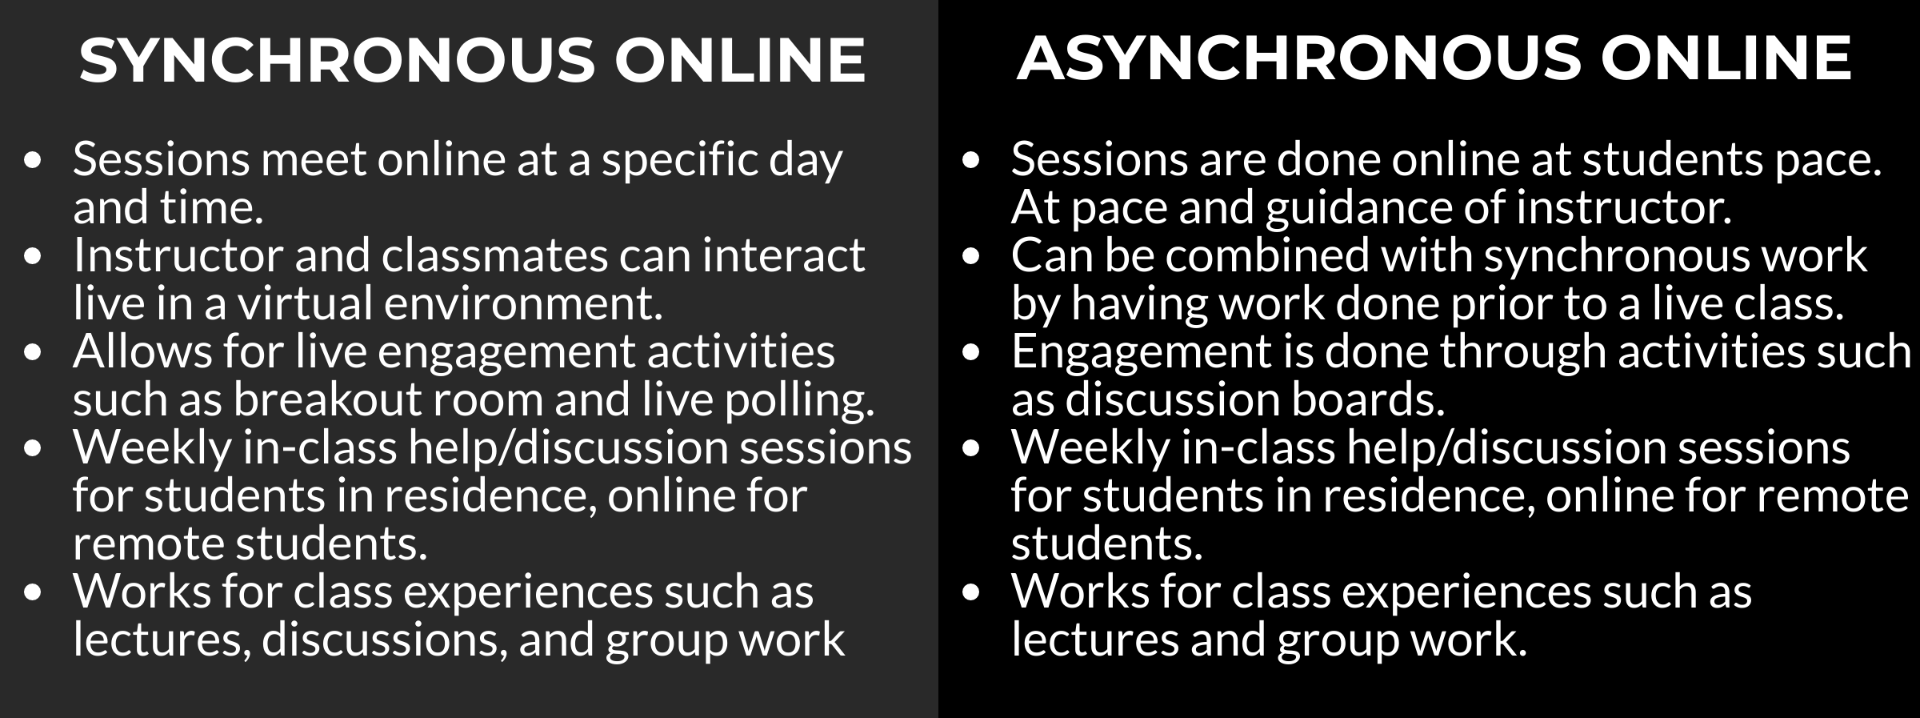 describes synchonous and asychronous online teaching styles